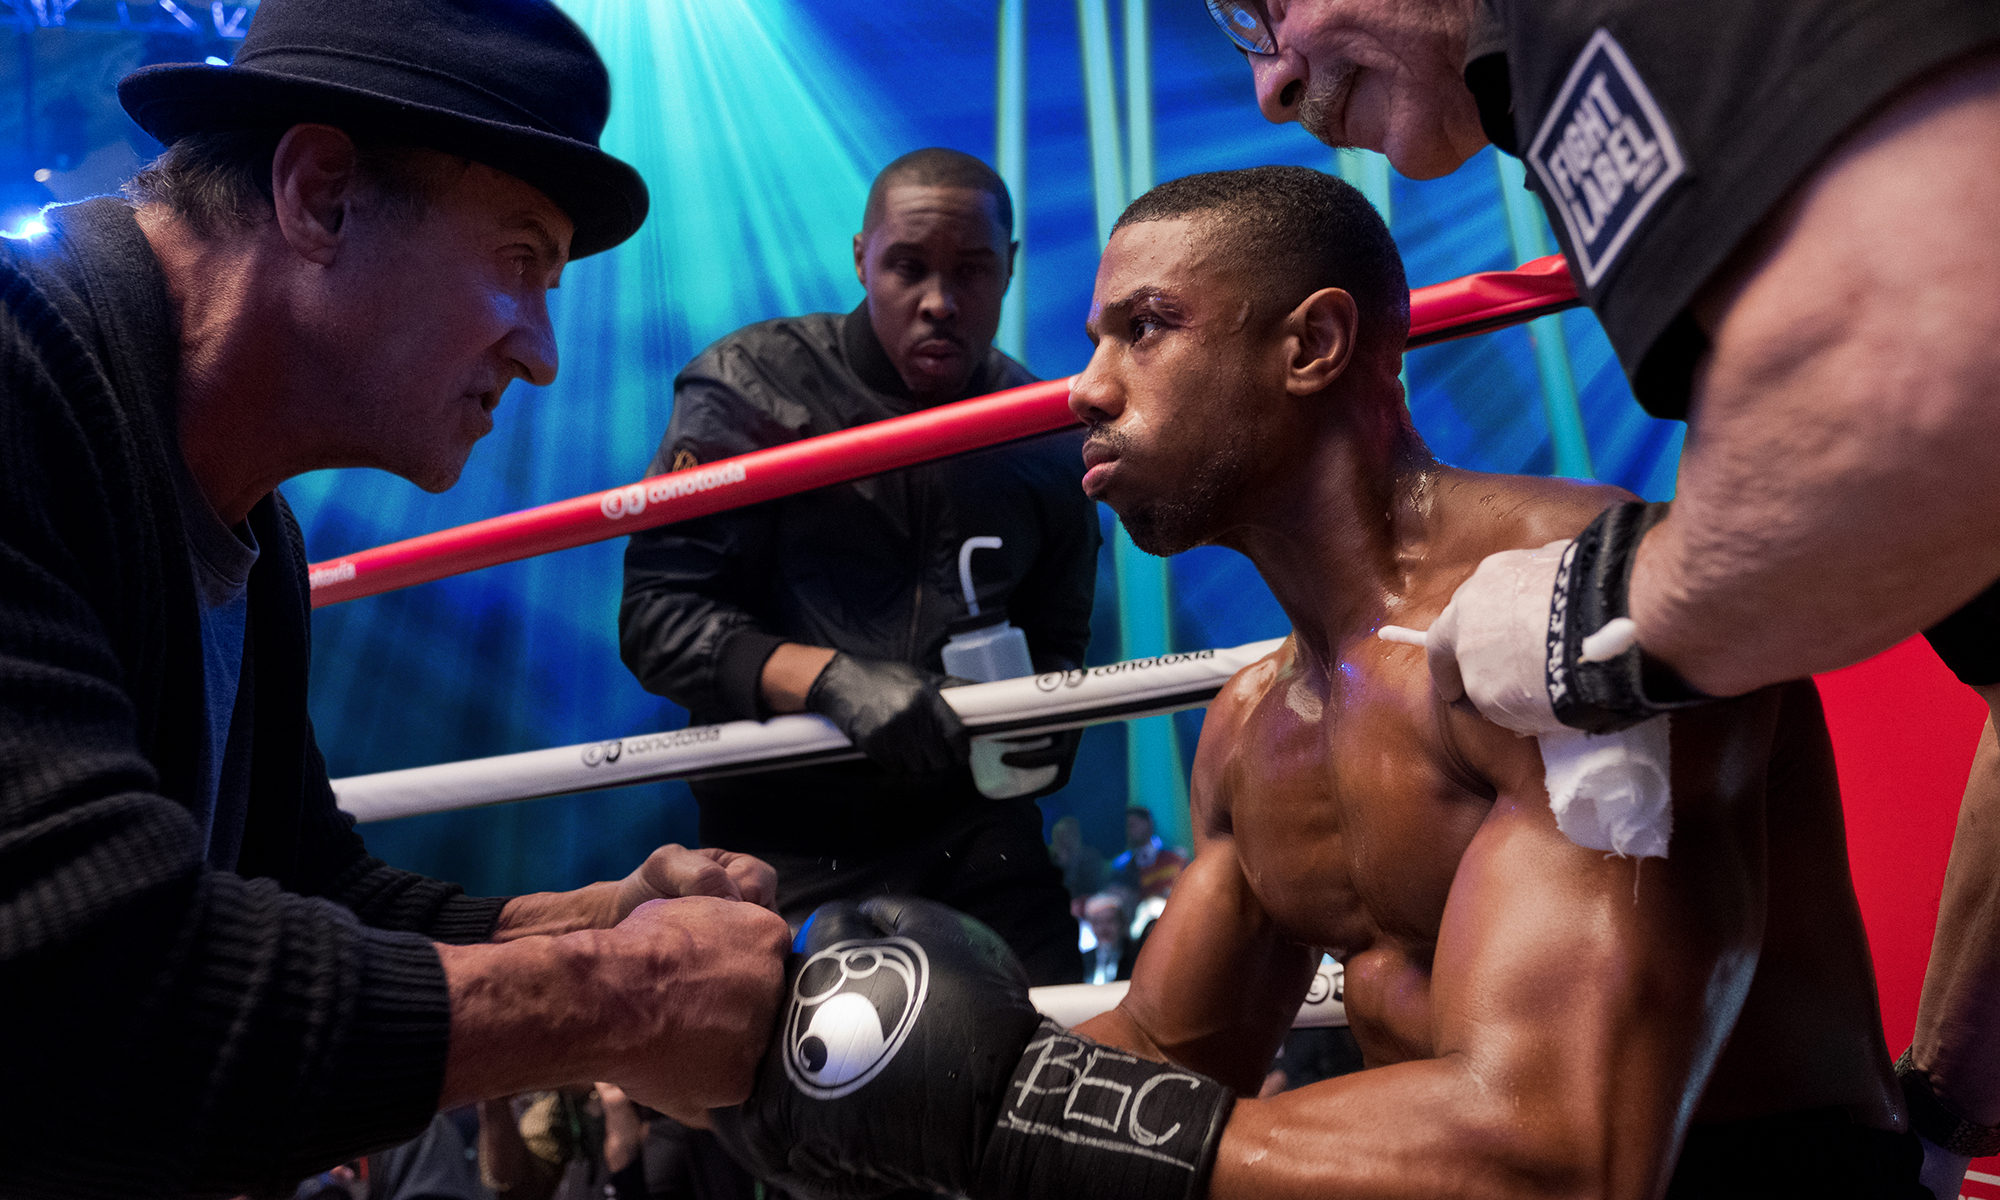 Michael B Jordan stars in Warner Bros.' Creed 2